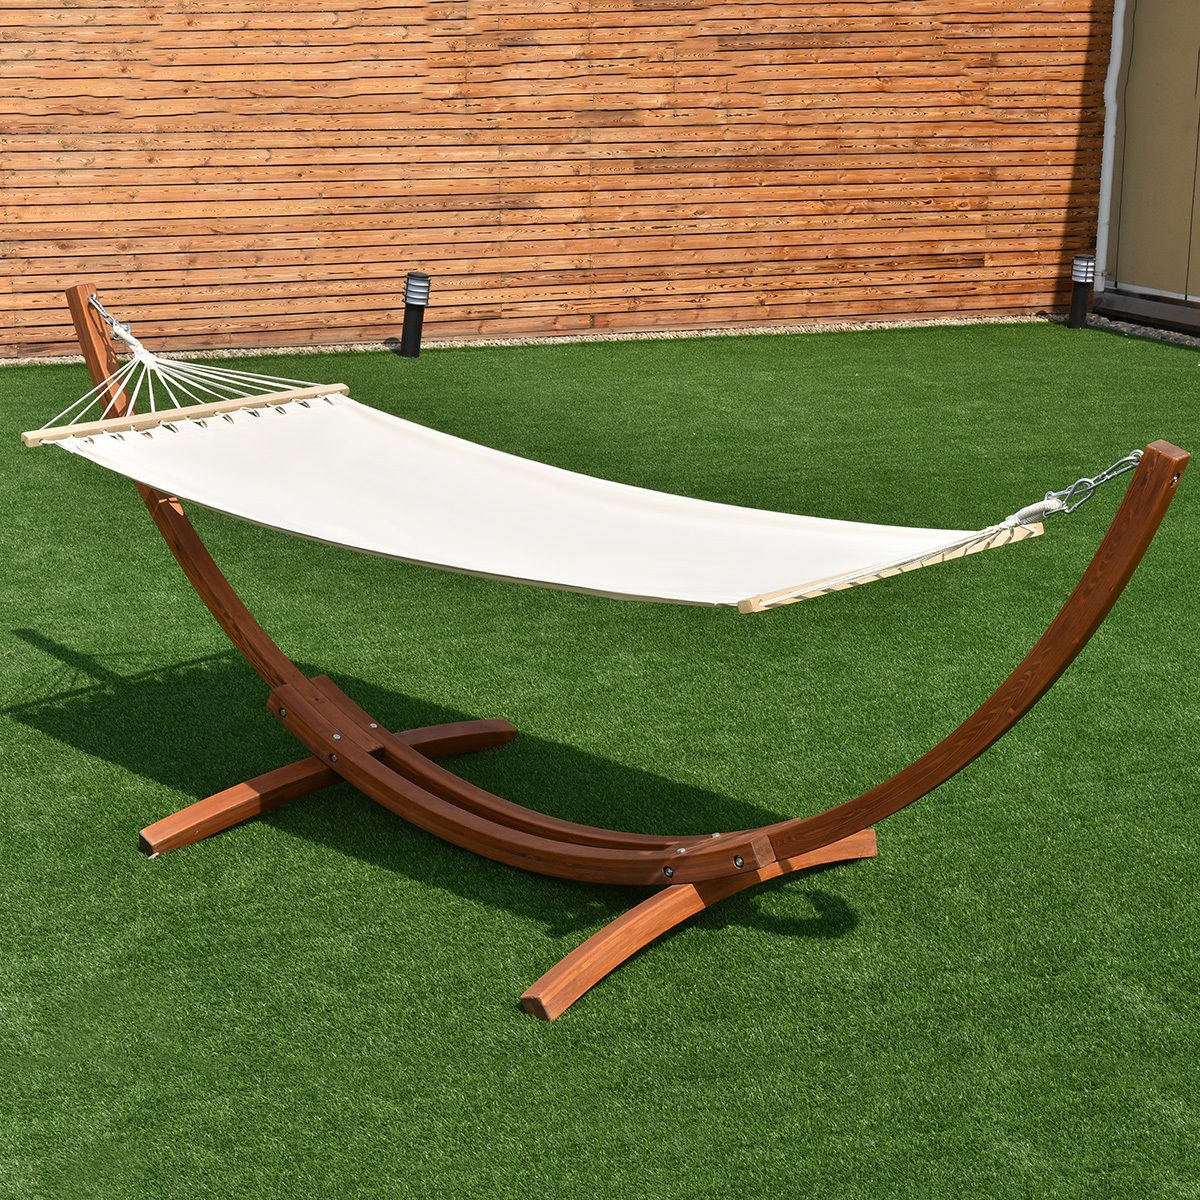 Wooden Curved Arc Hammock Stand with Cotton Garden Outdoor 142''x50''x51''